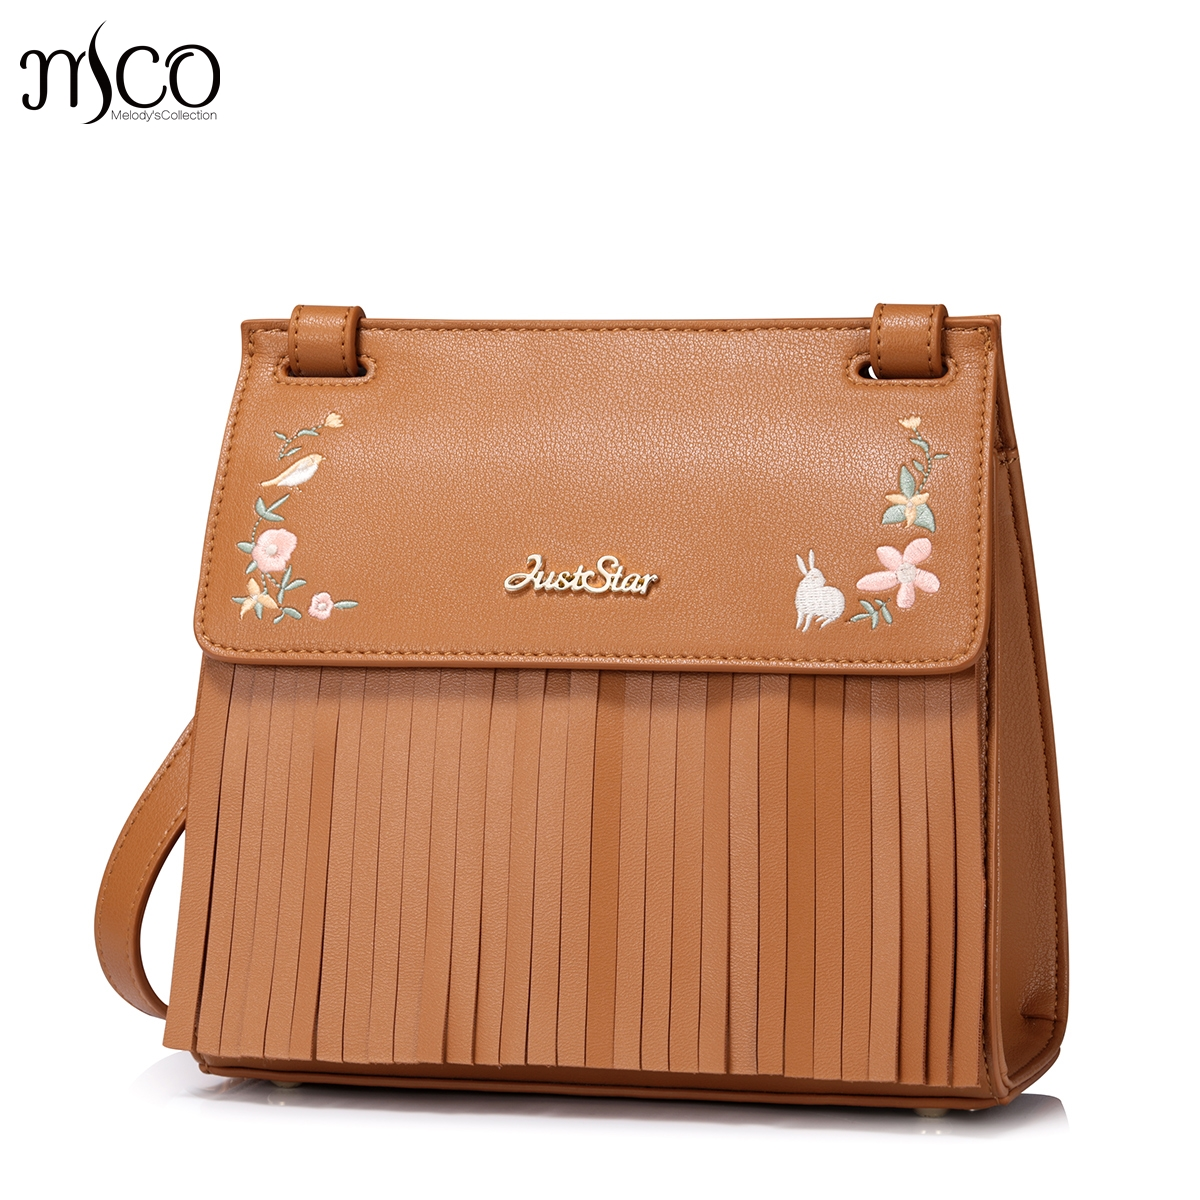 leather luxury tassels flower women bags designer Strap shoulder crossbody messenger bag Ladies Girls Sac a Main femme de marque new arrival brand designer mini handbag high quality women leather shoulder bag fashion crossbody bag sac a main femme de marque